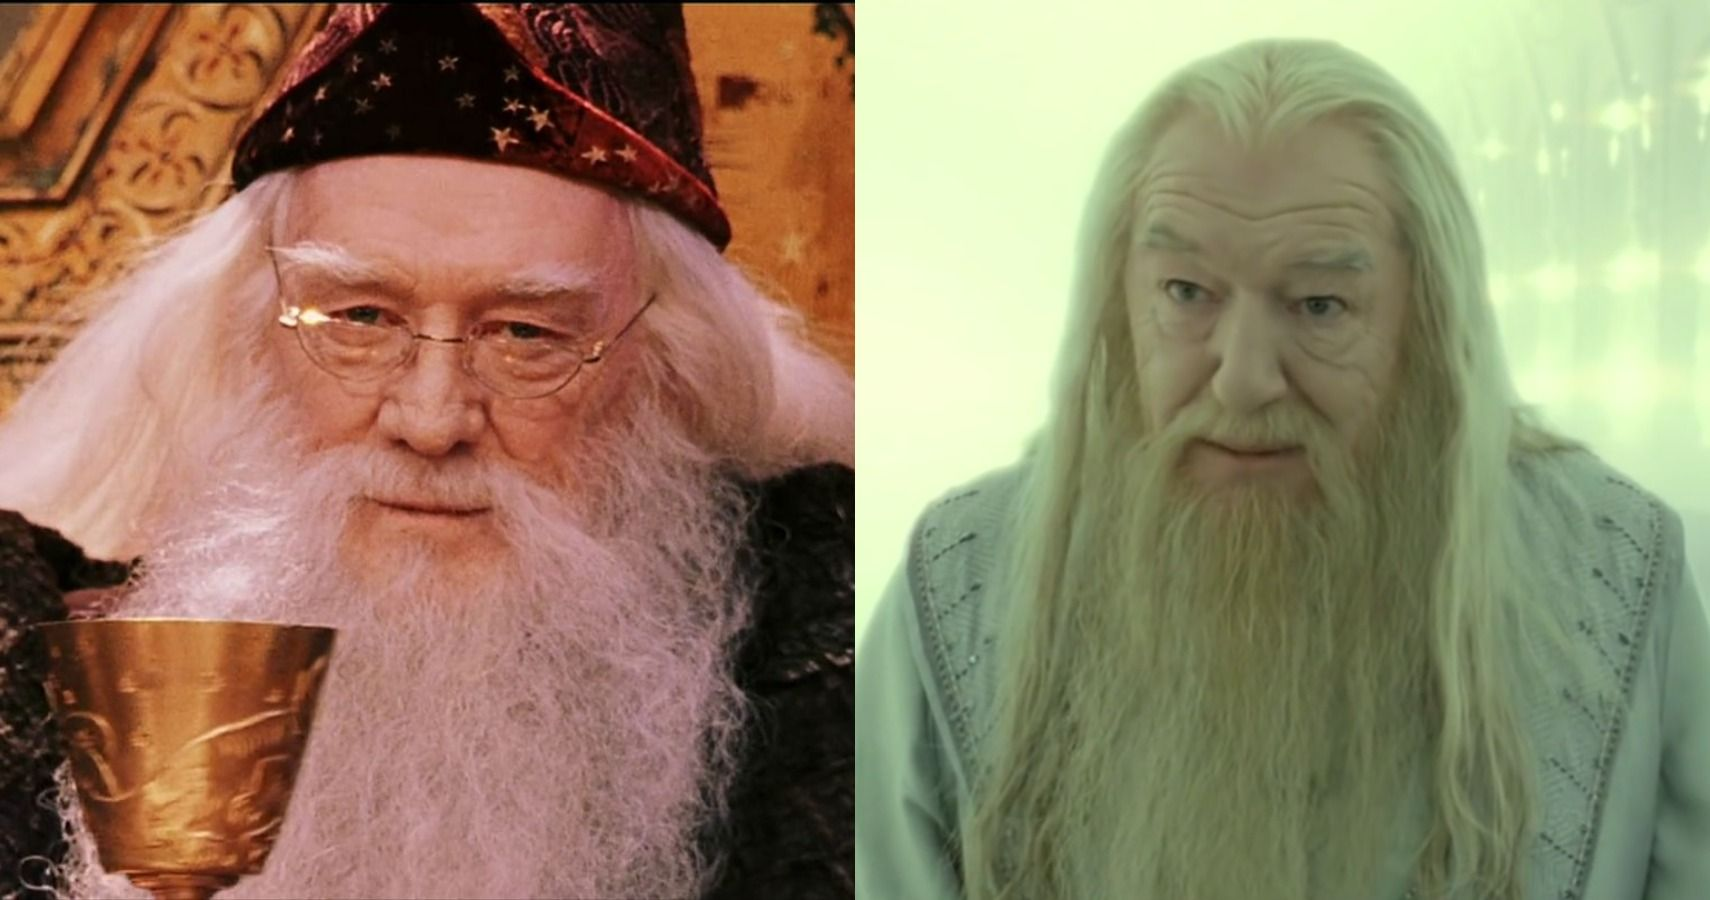 Harry Potter: 10 Biggest Ways Dumbledore Changed From Sorcerer's Stone To Deathly Hallows